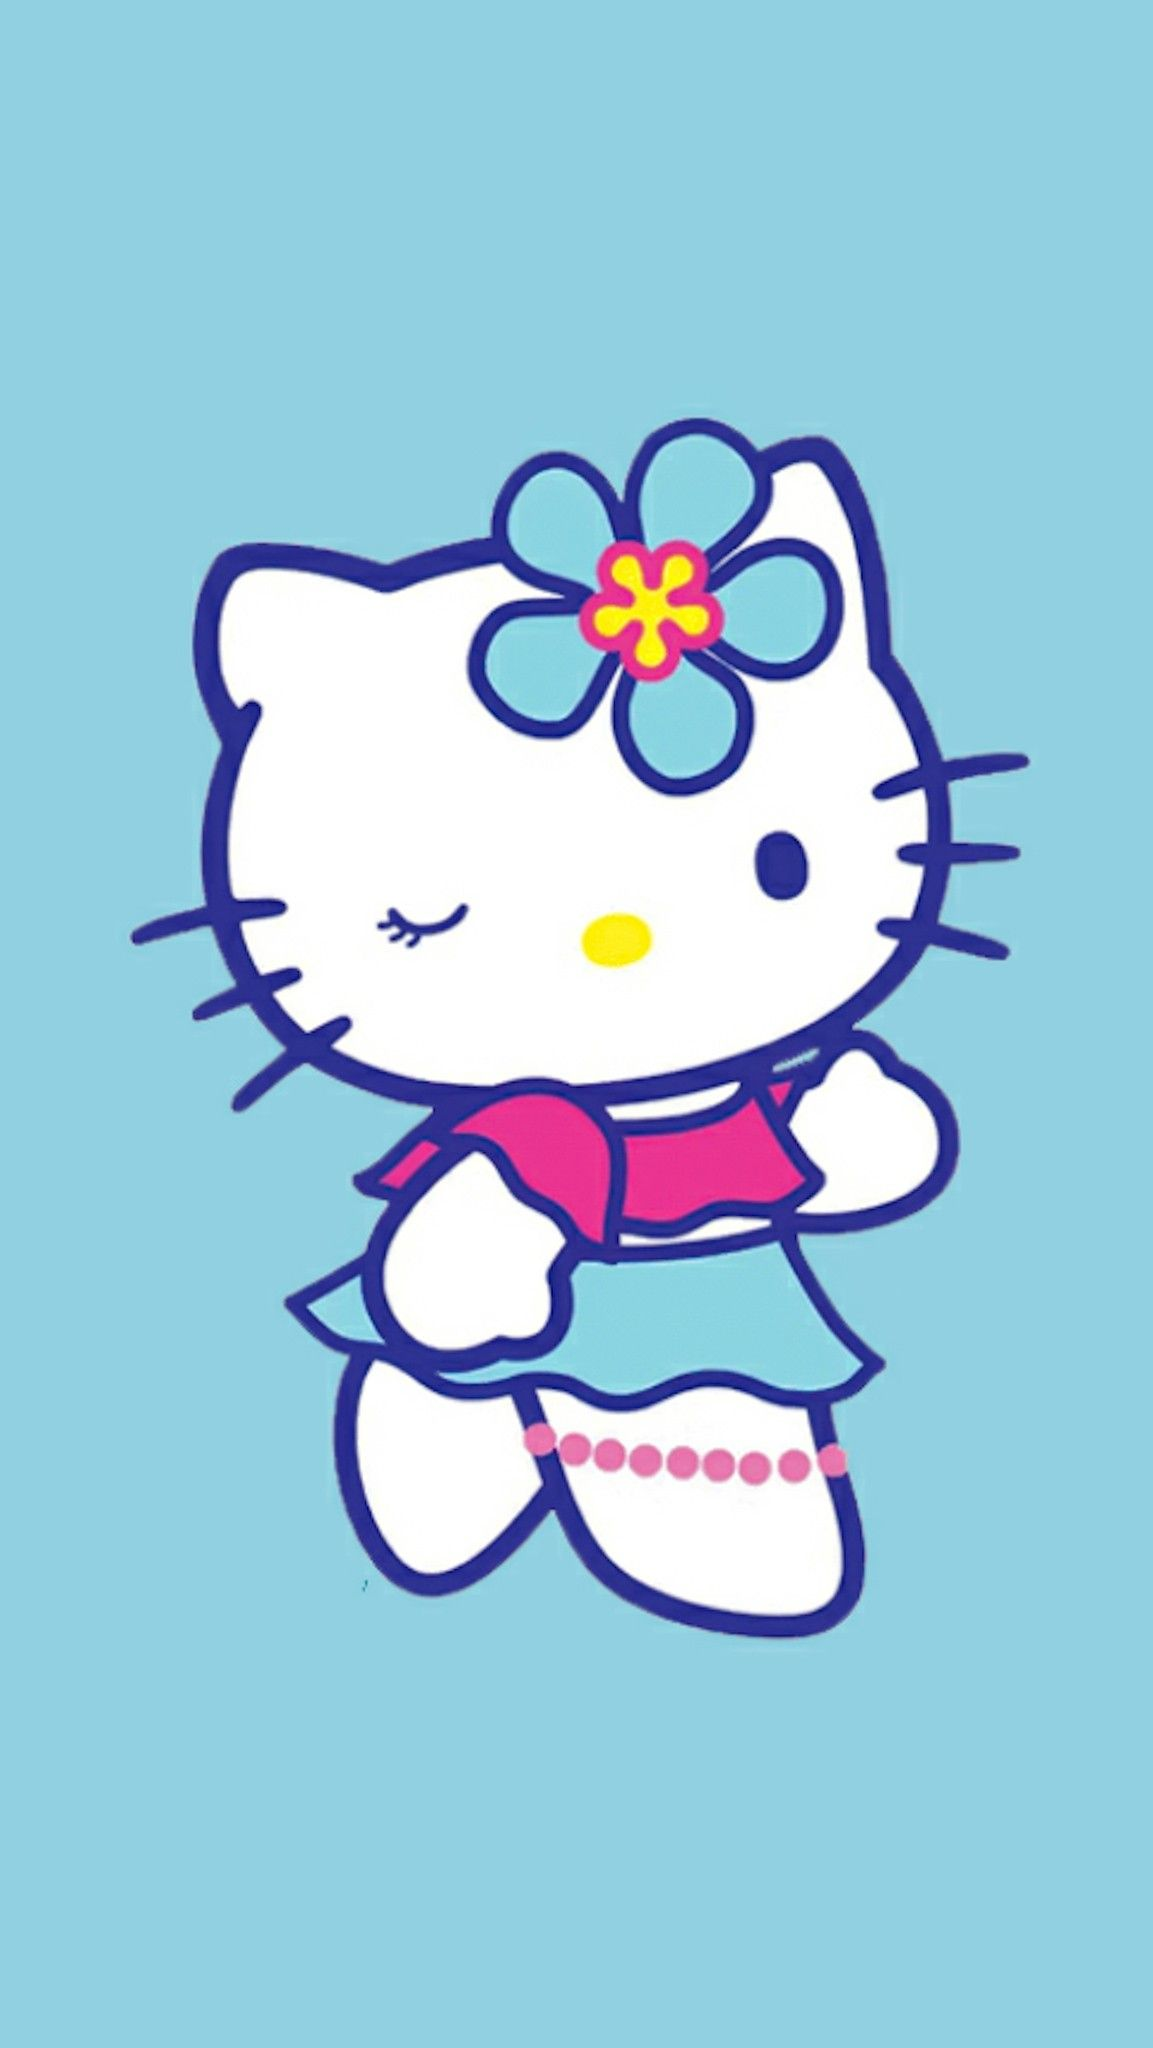 Pin by Katie Celso on Hello Kitty in 2020 | Hello kitty ...